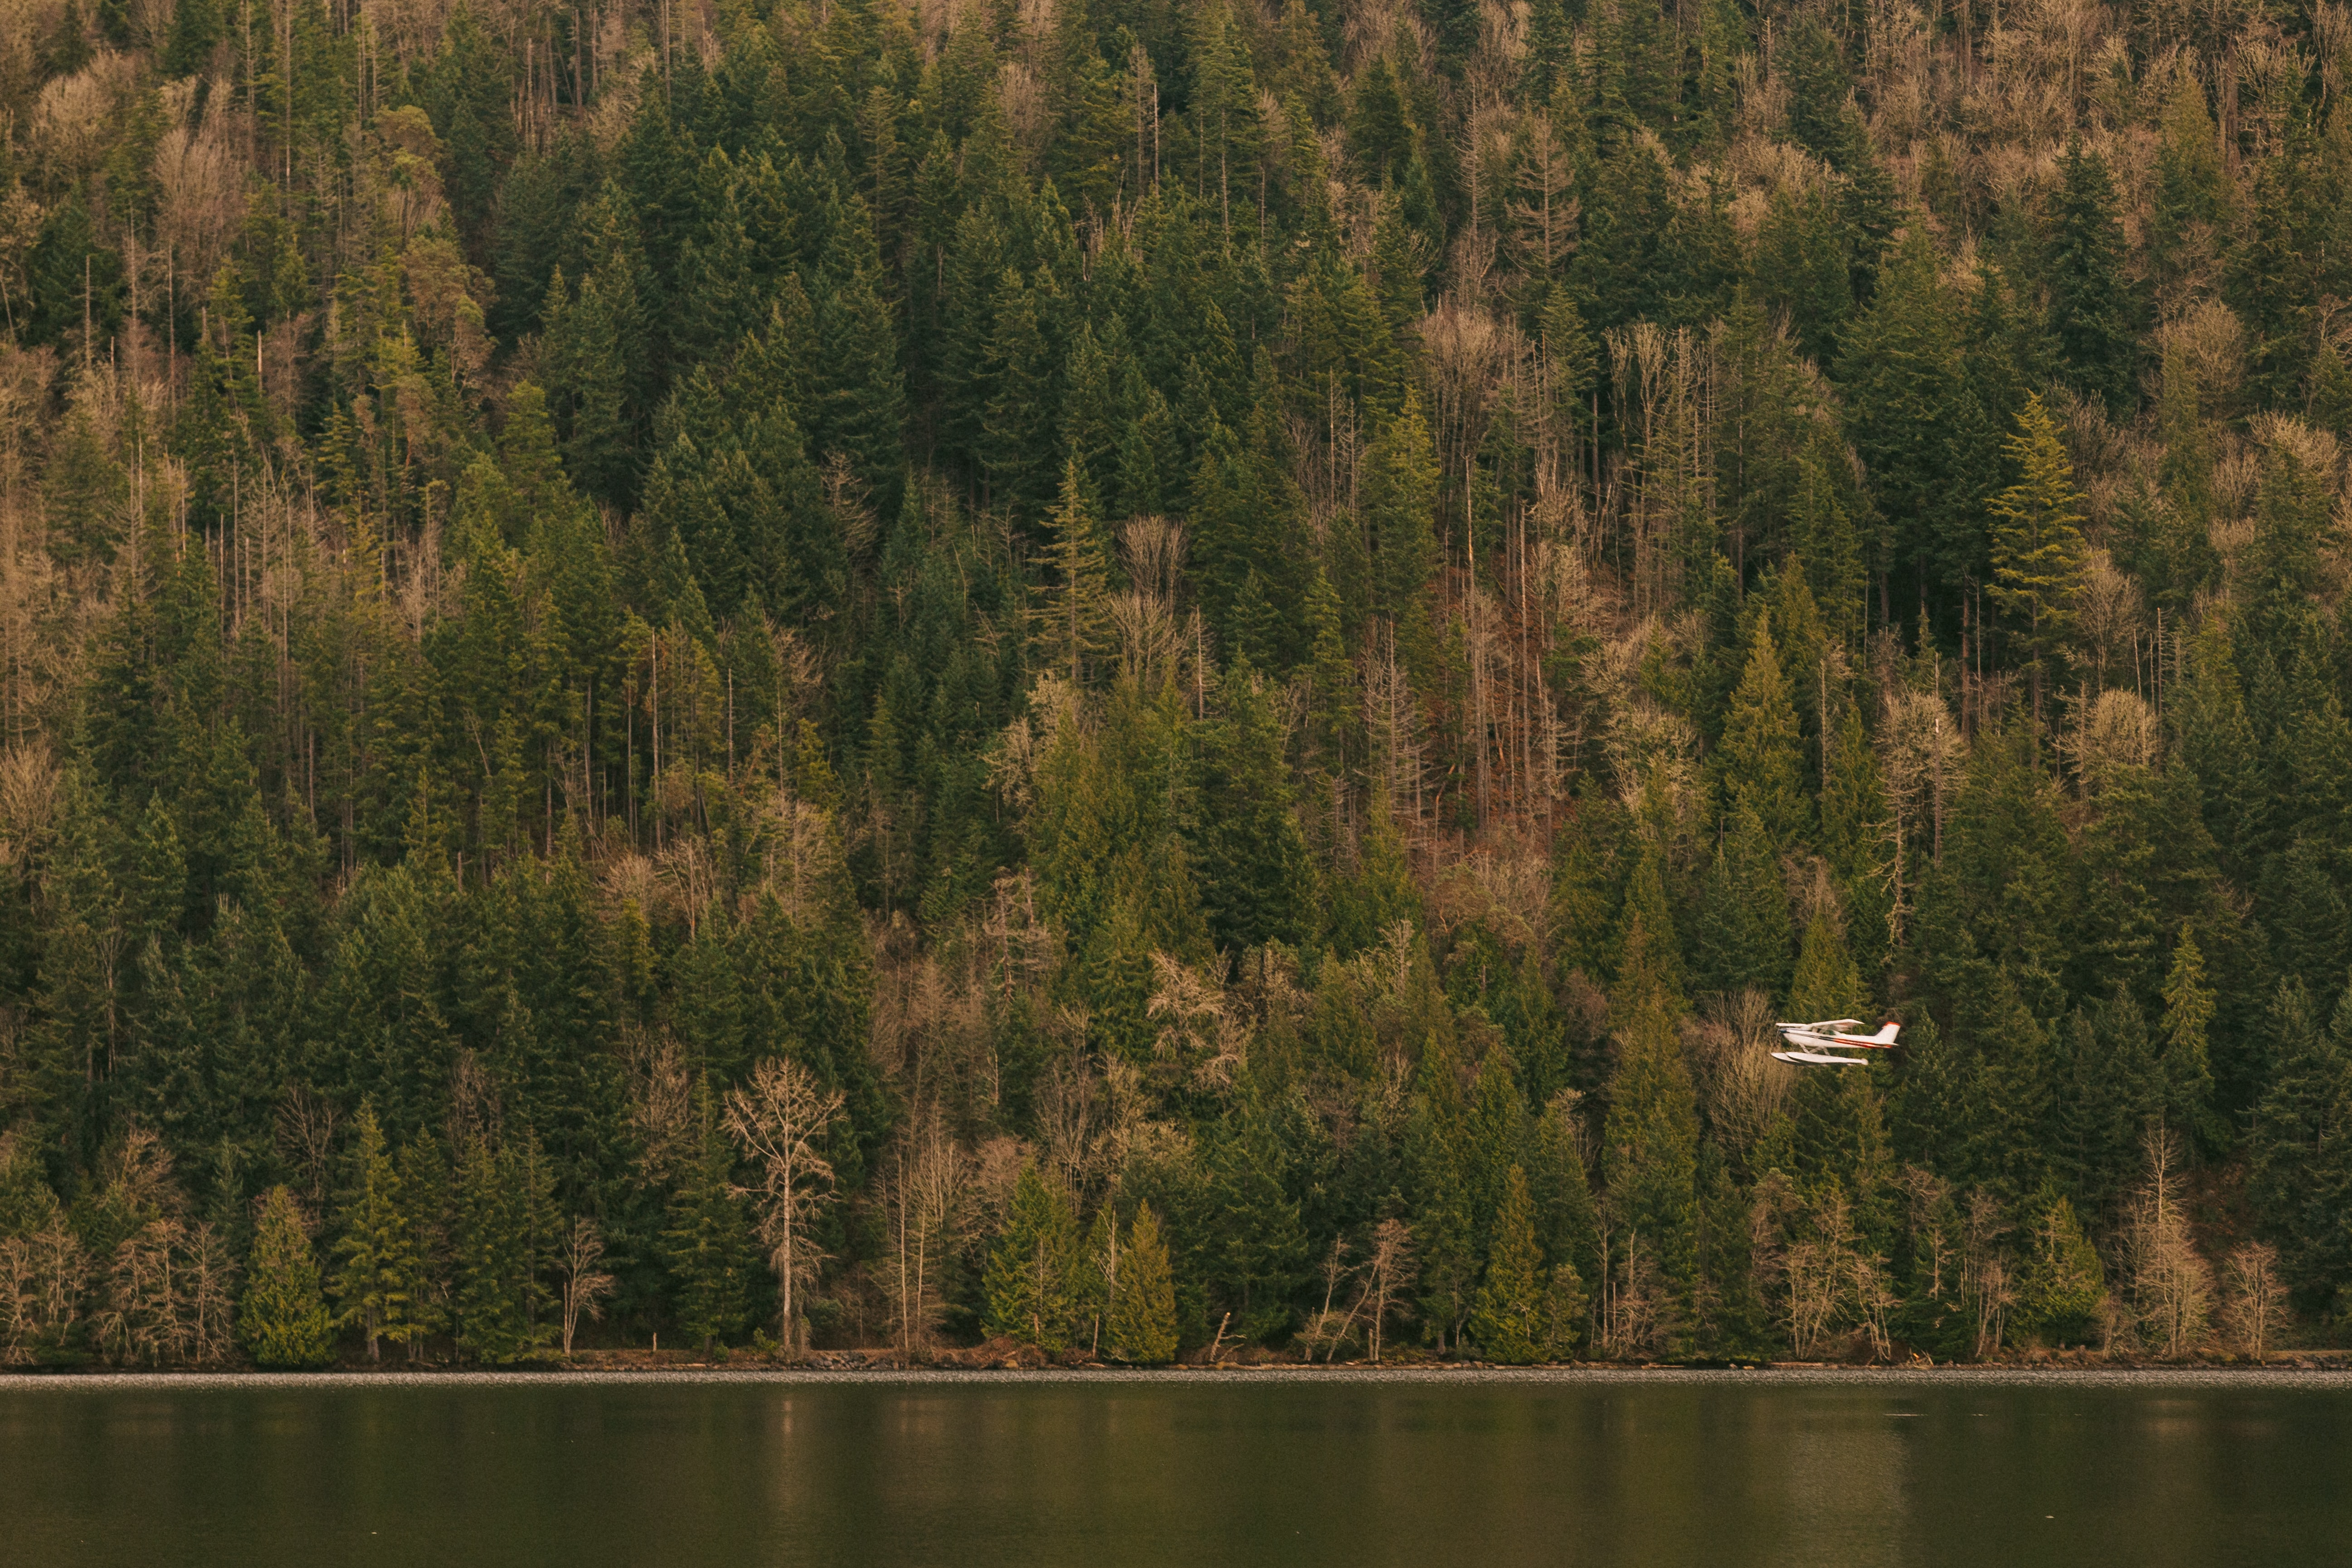 Plane flies over a calm lake near green forest trees